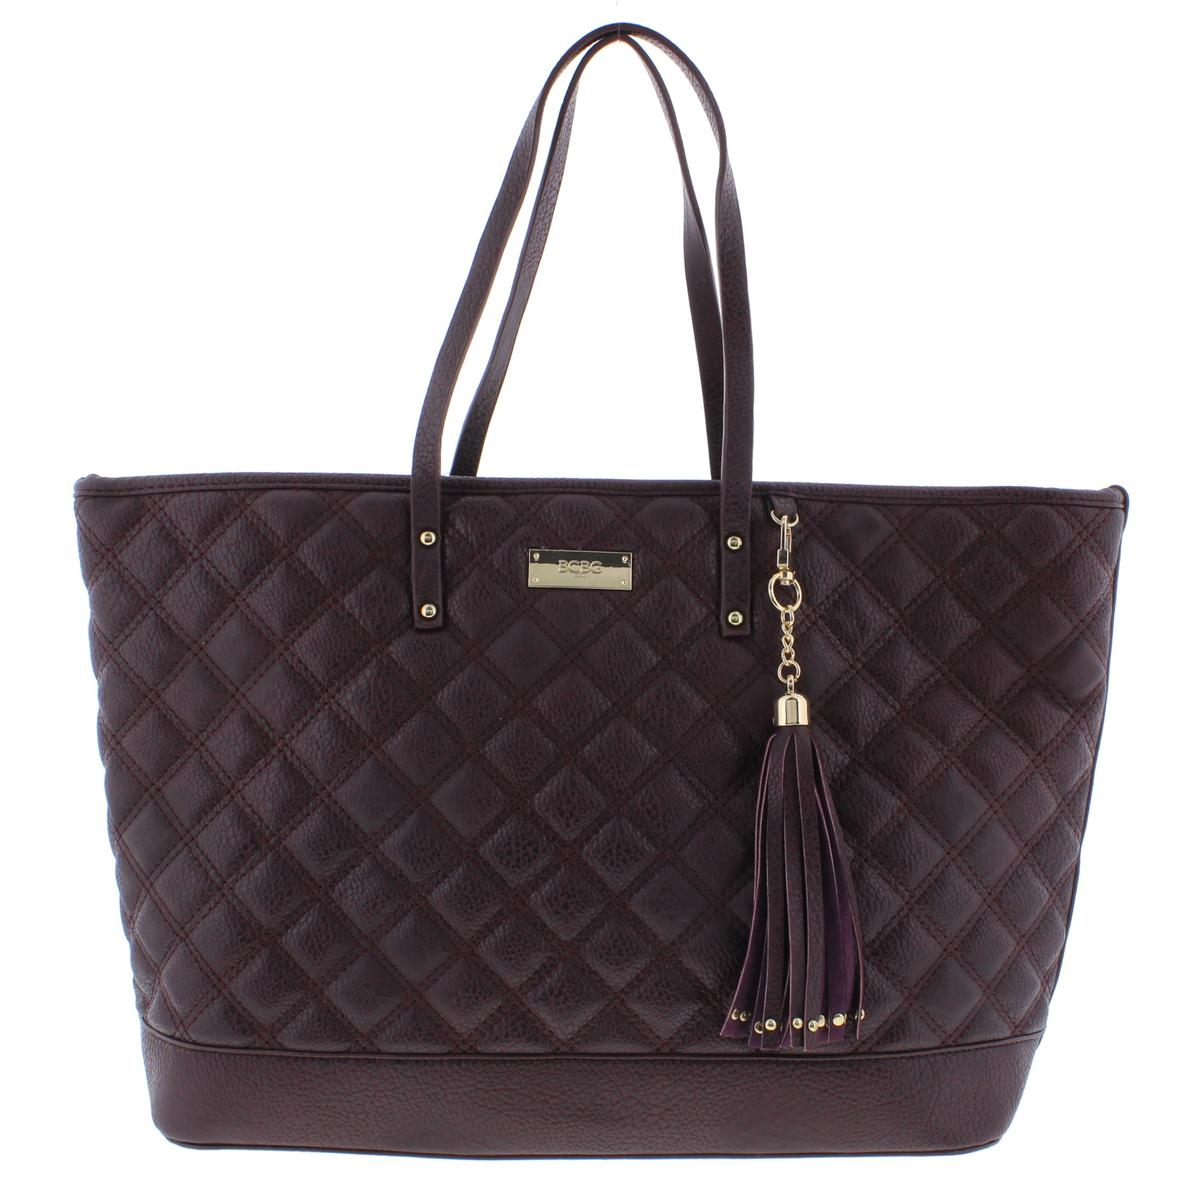 Bcbg Paris 1385 Womens Quilted Faux Leather Tote Handbag